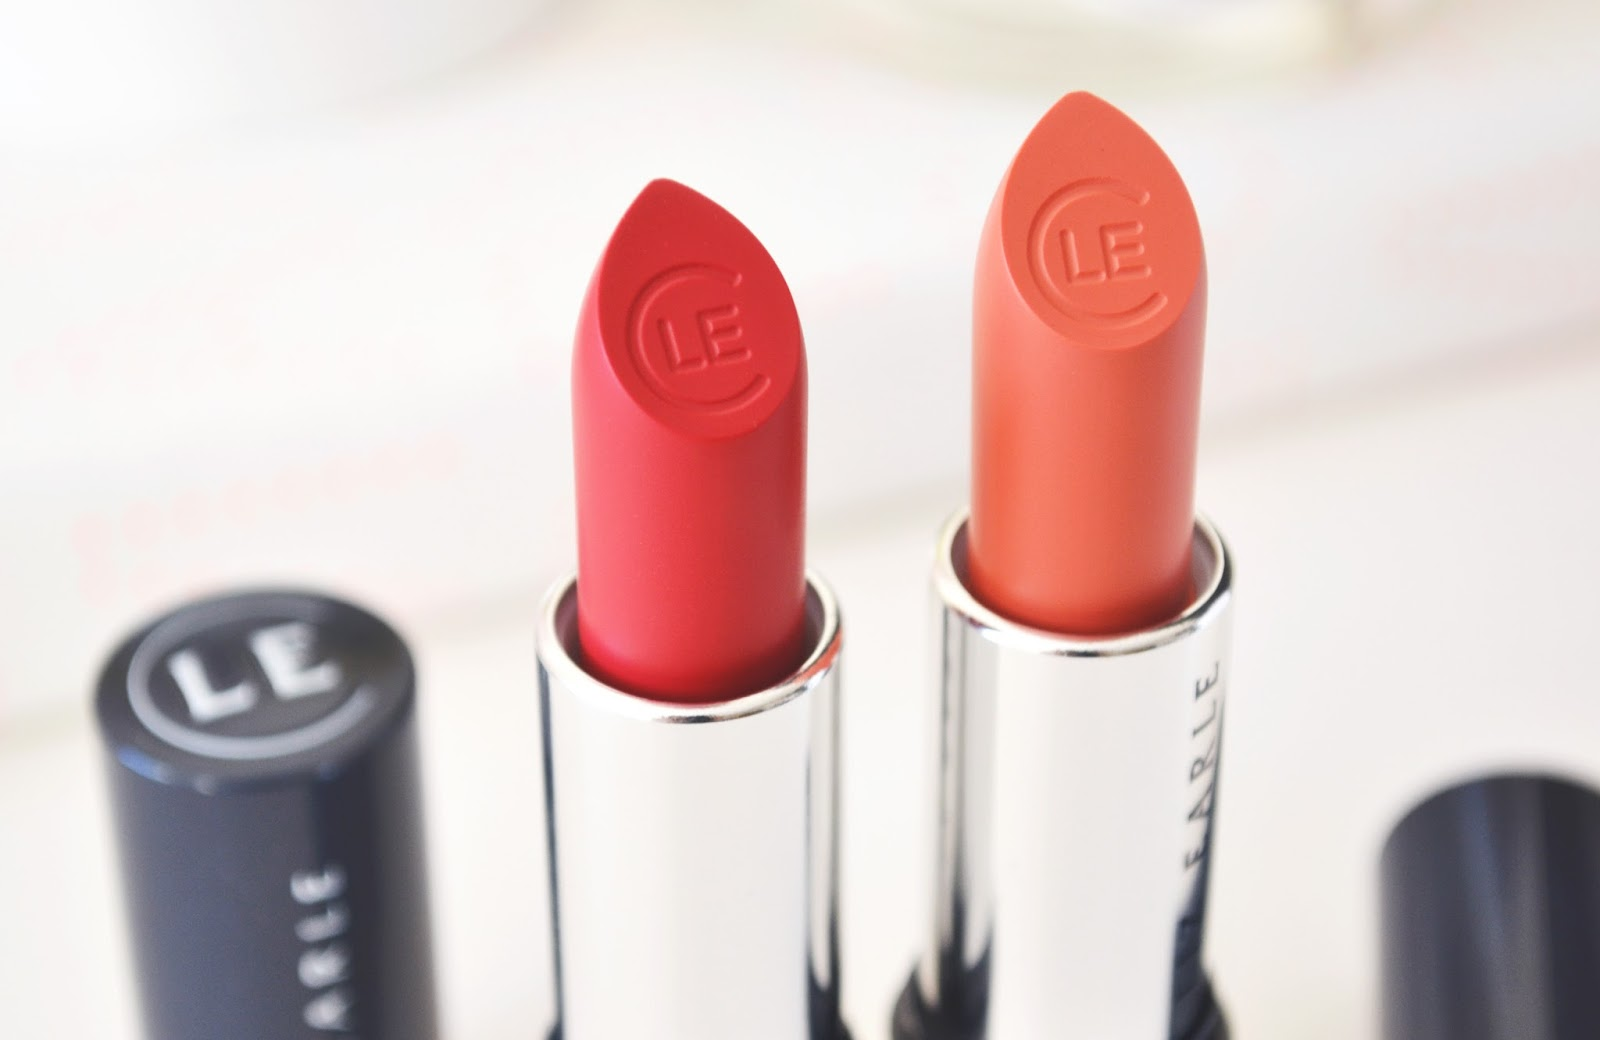 Liz Earle Lipstick Review, liz earle hibiscus, liz earle melon lipstick